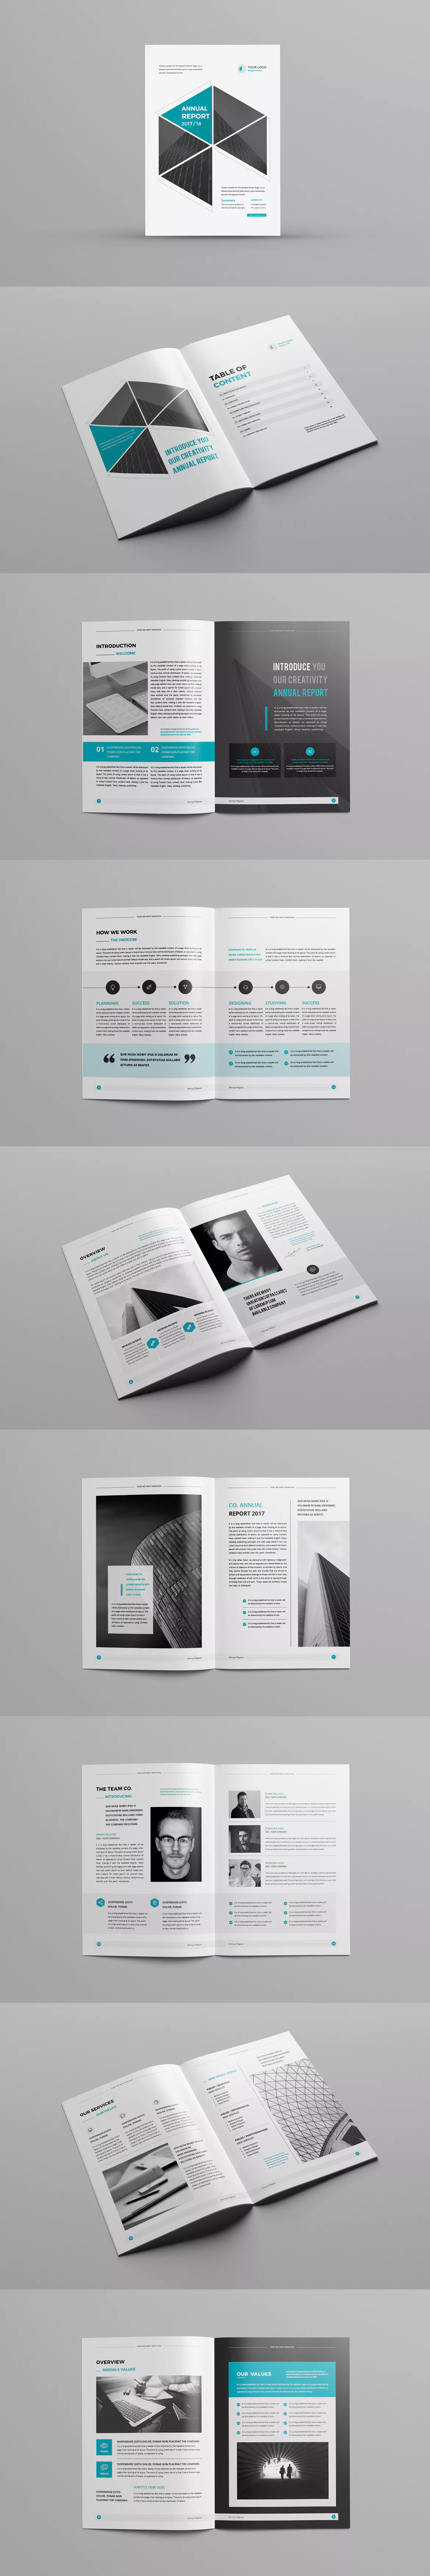 Annual Report Template - 24 Pages - INDD | Annual Report Brochure ...